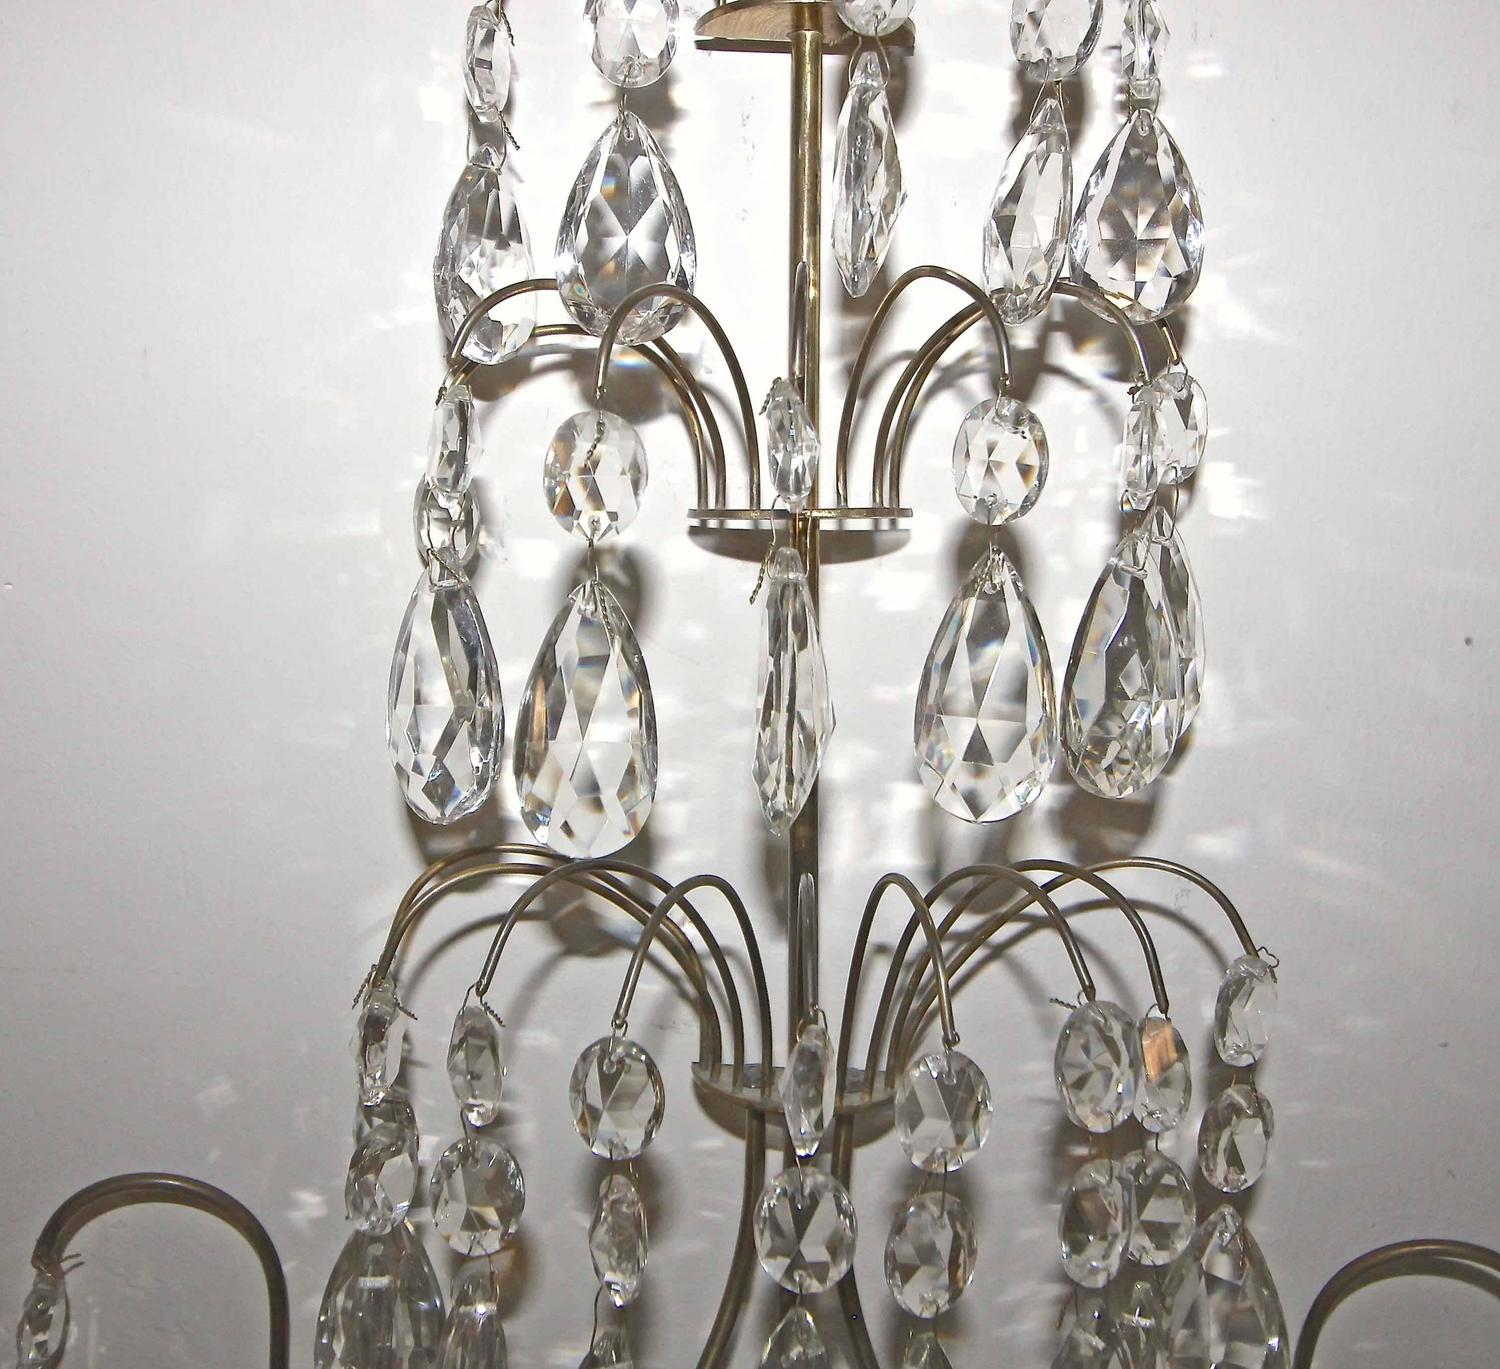 Pair of Swedish Gustavian Style Crystal and Brass Candle Wall Sconces For Sale at 1stdibs